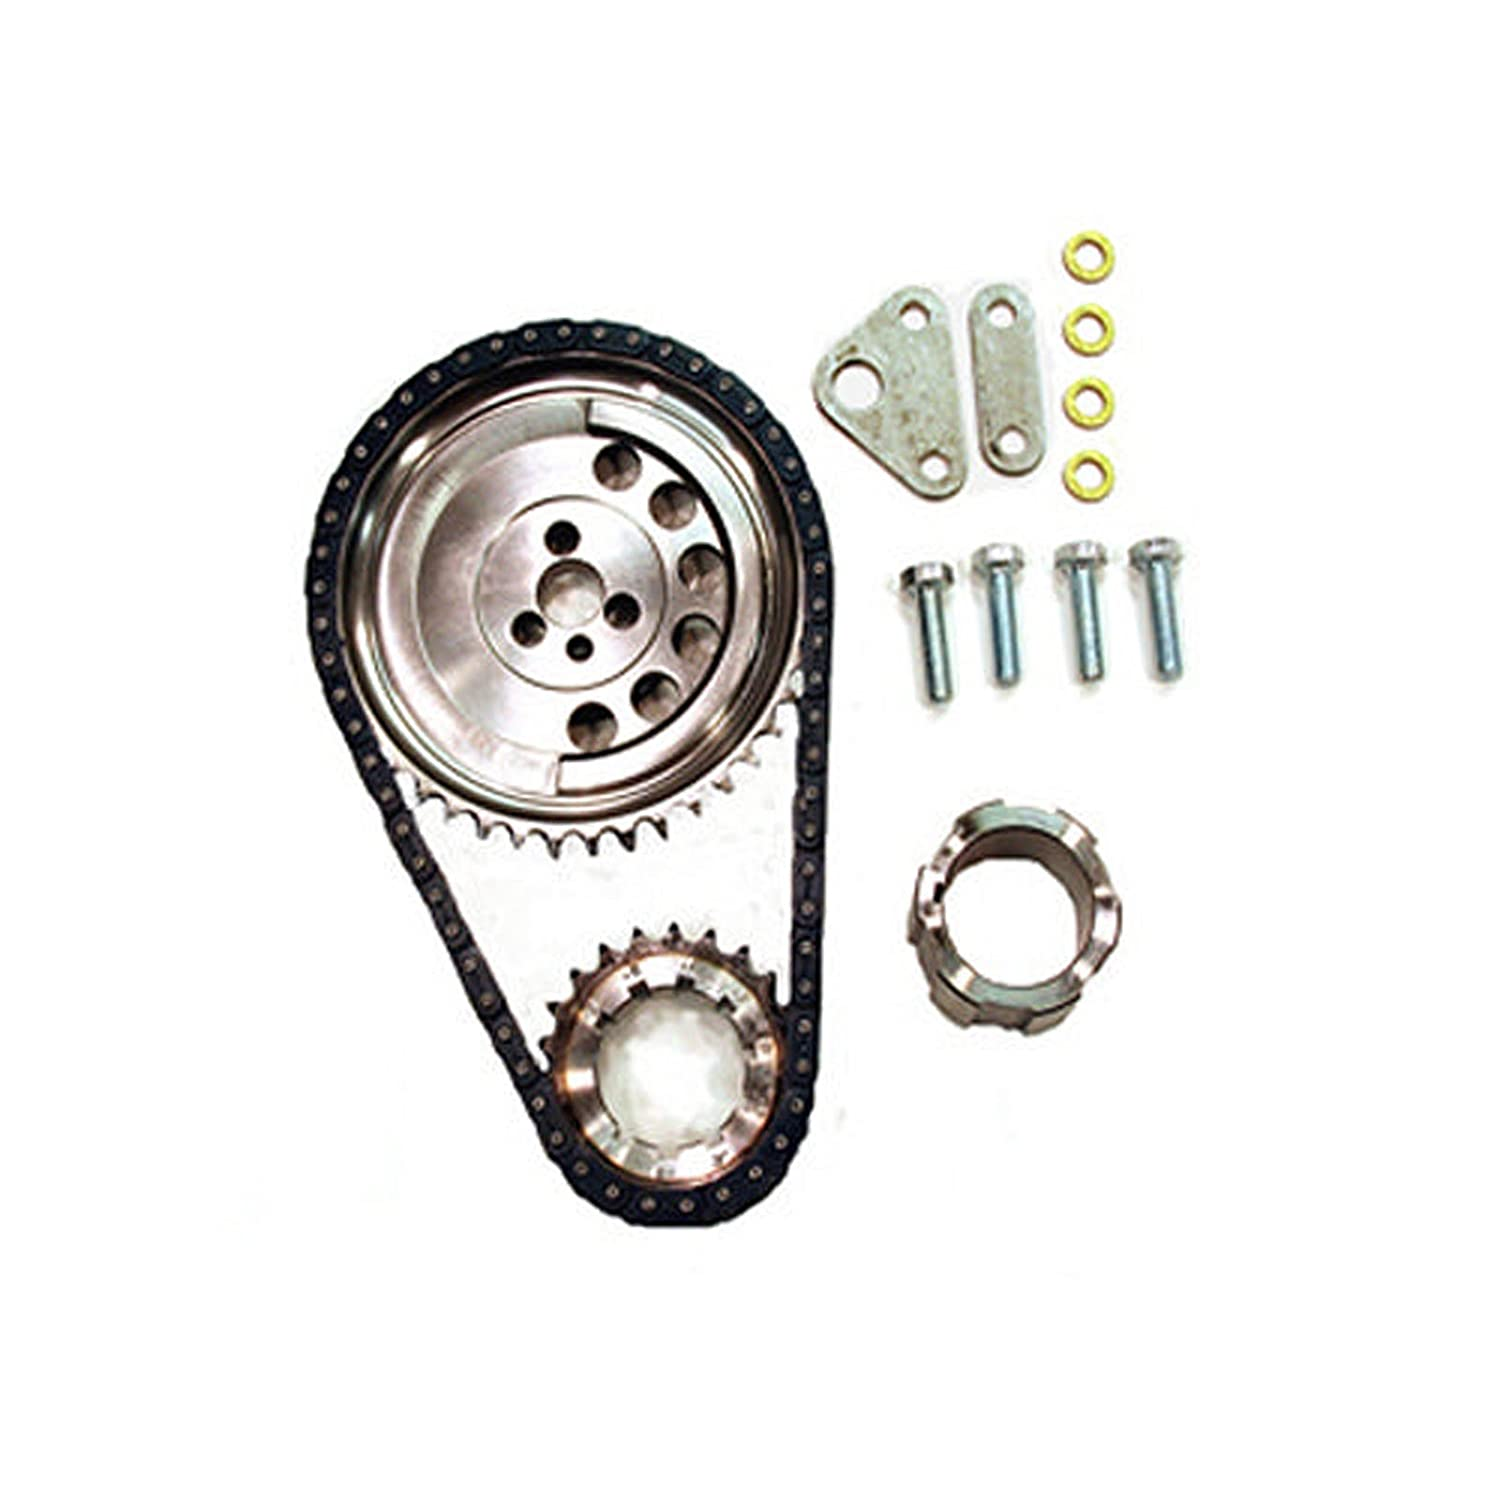 Slp Performance Parts 55003 Double Roller Timing Chain Chevy 350 Tab Location Automotive